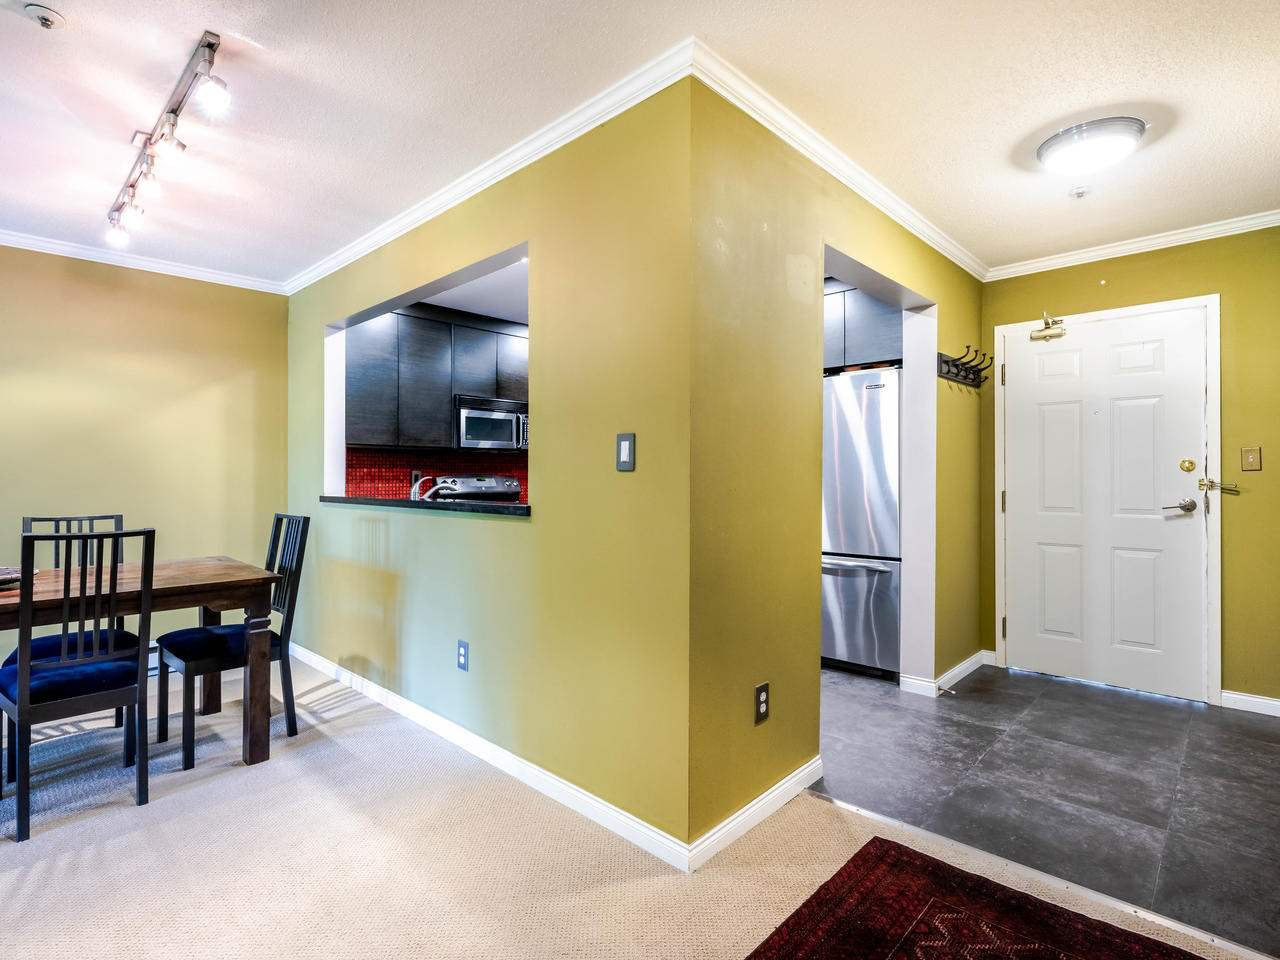 """Photo 14: Photos: 303 2288 W 12TH Avenue in Vancouver: Kitsilano Condo for sale in """"Connaught Point"""" (Vancouver West)  : MLS®# R2494985"""